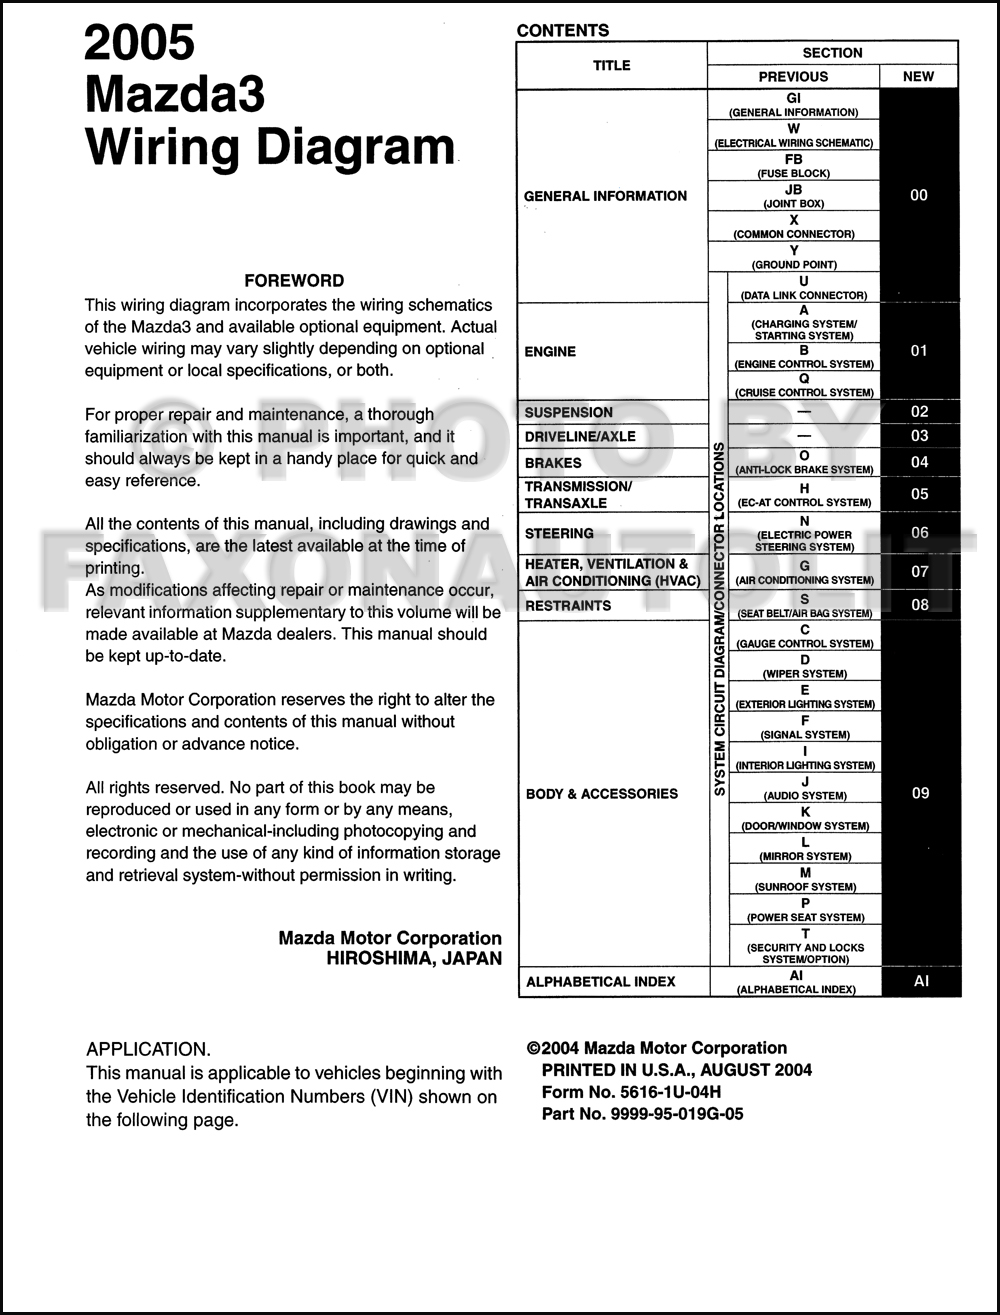 Mazda 3 Z6 Wiring Diagram : Mazda wiring diagram manual original